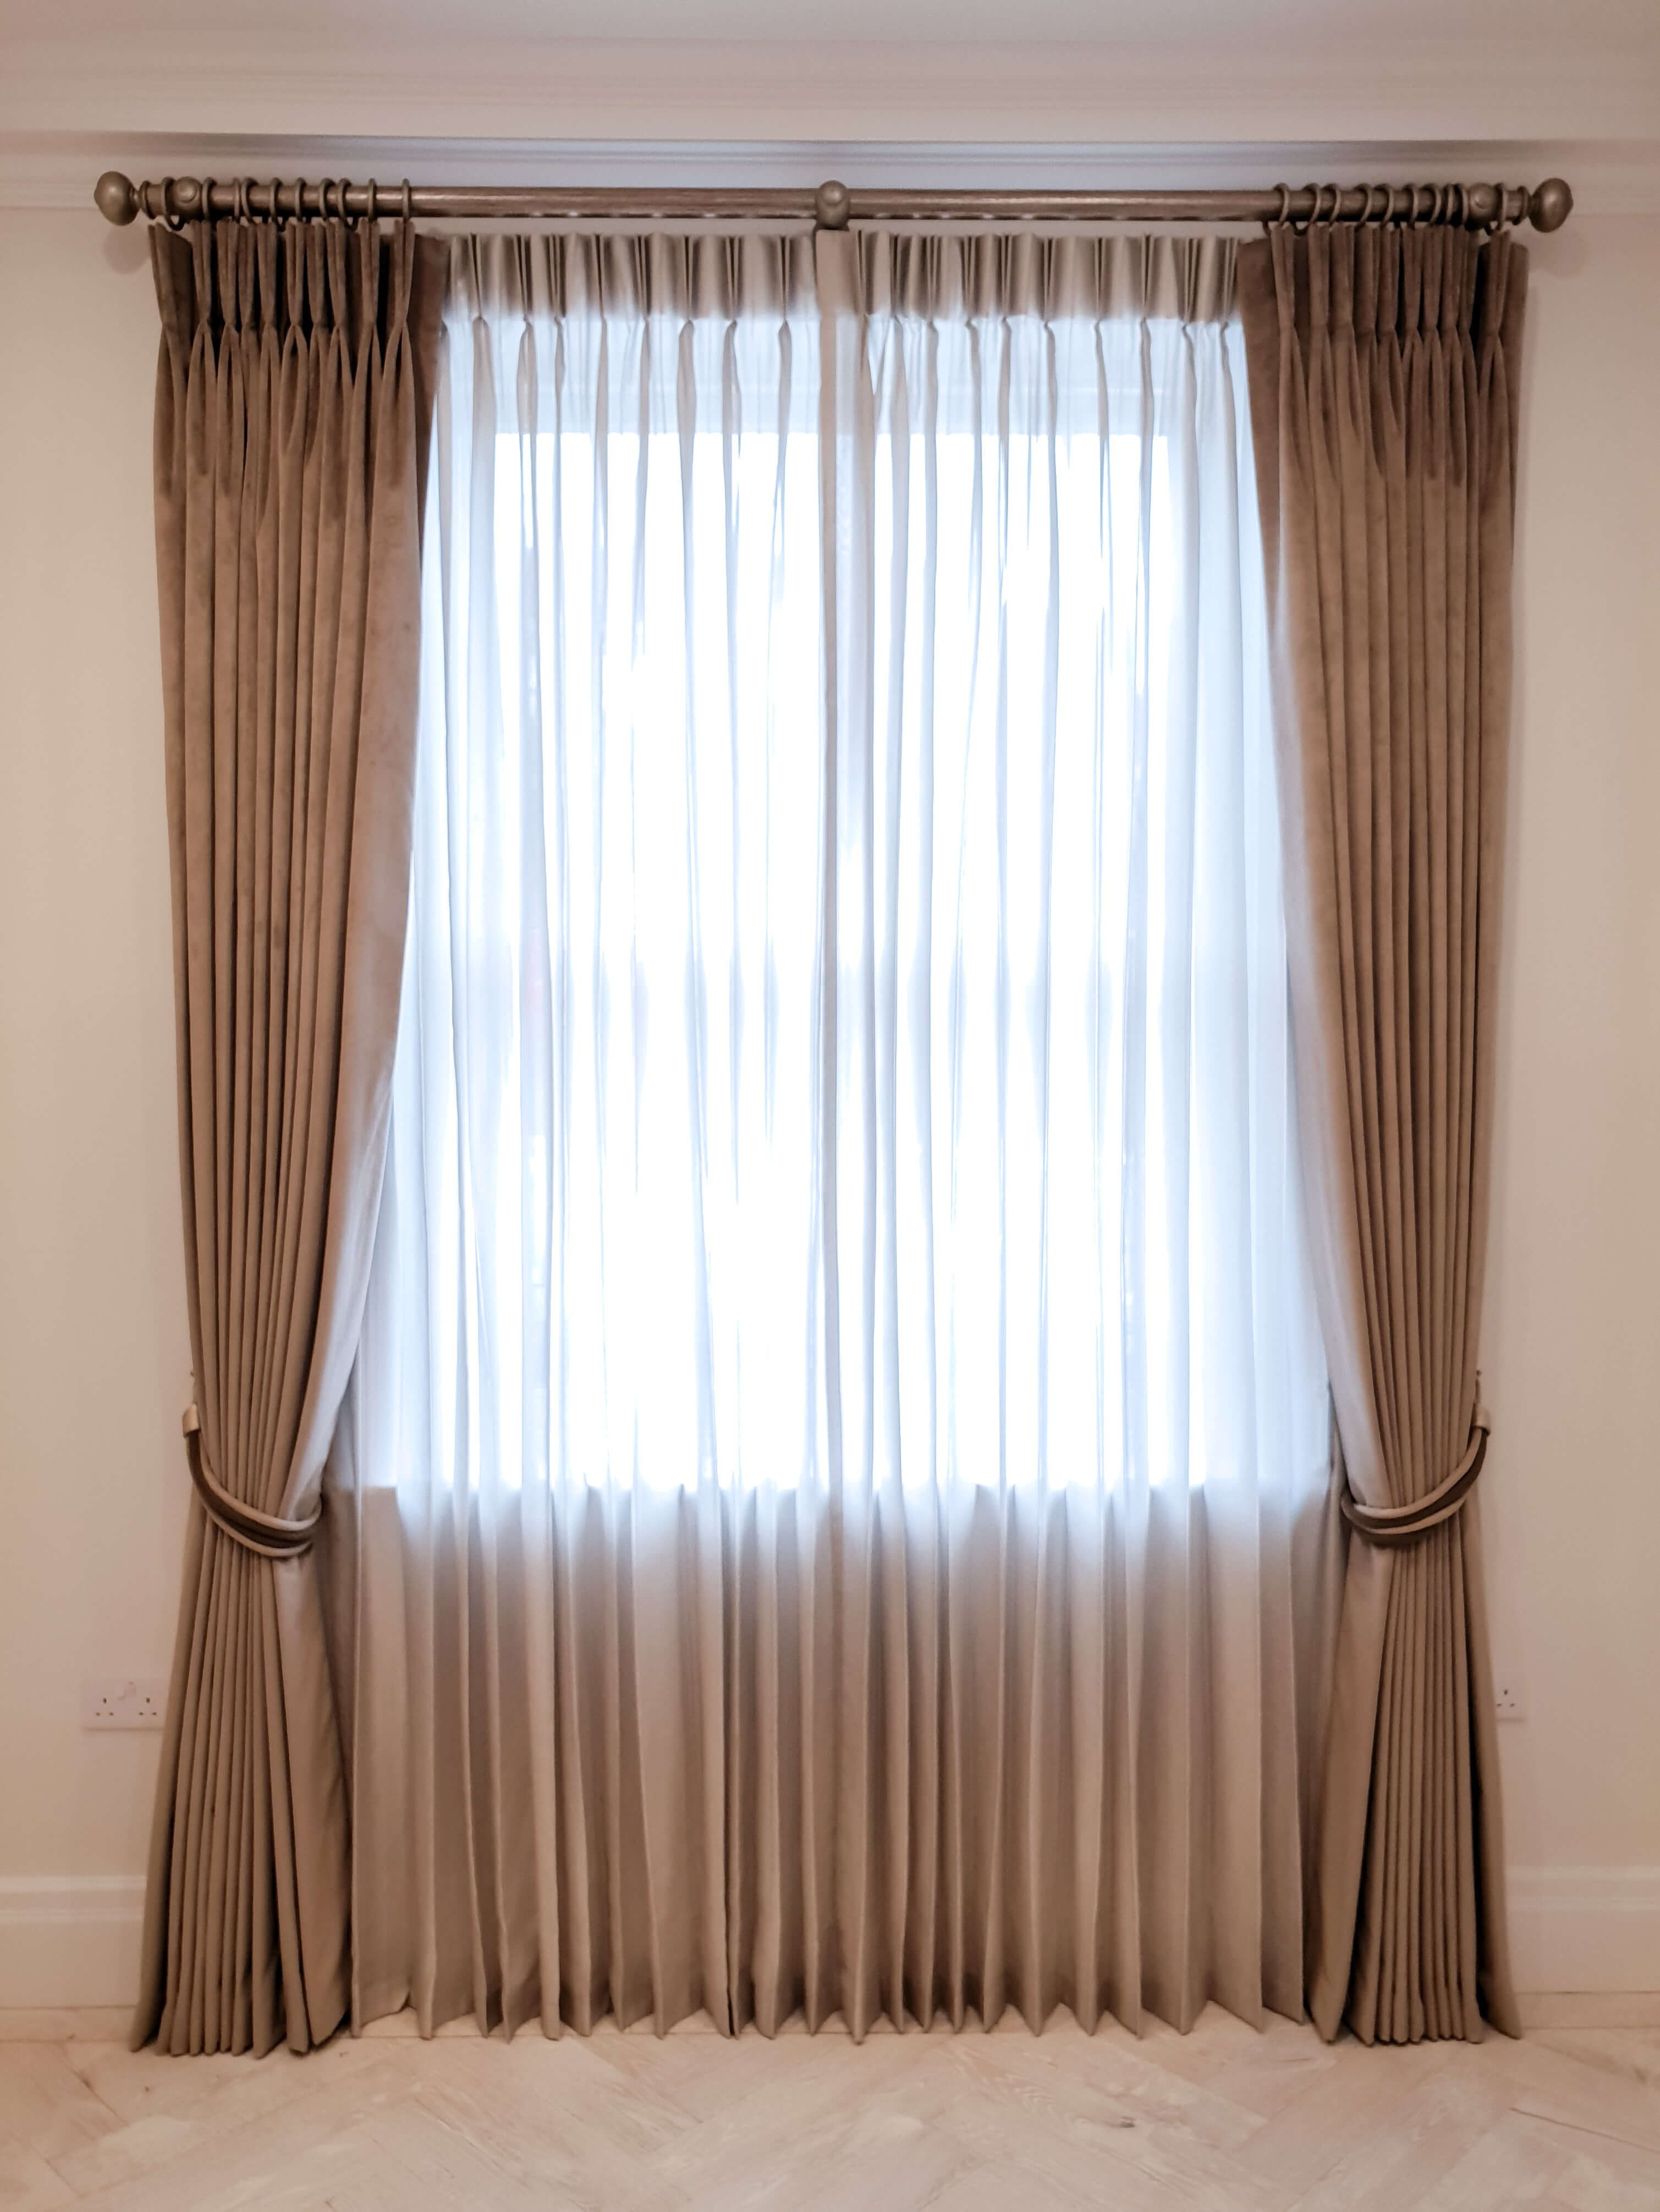 Curtains on a wooden pole with sheers